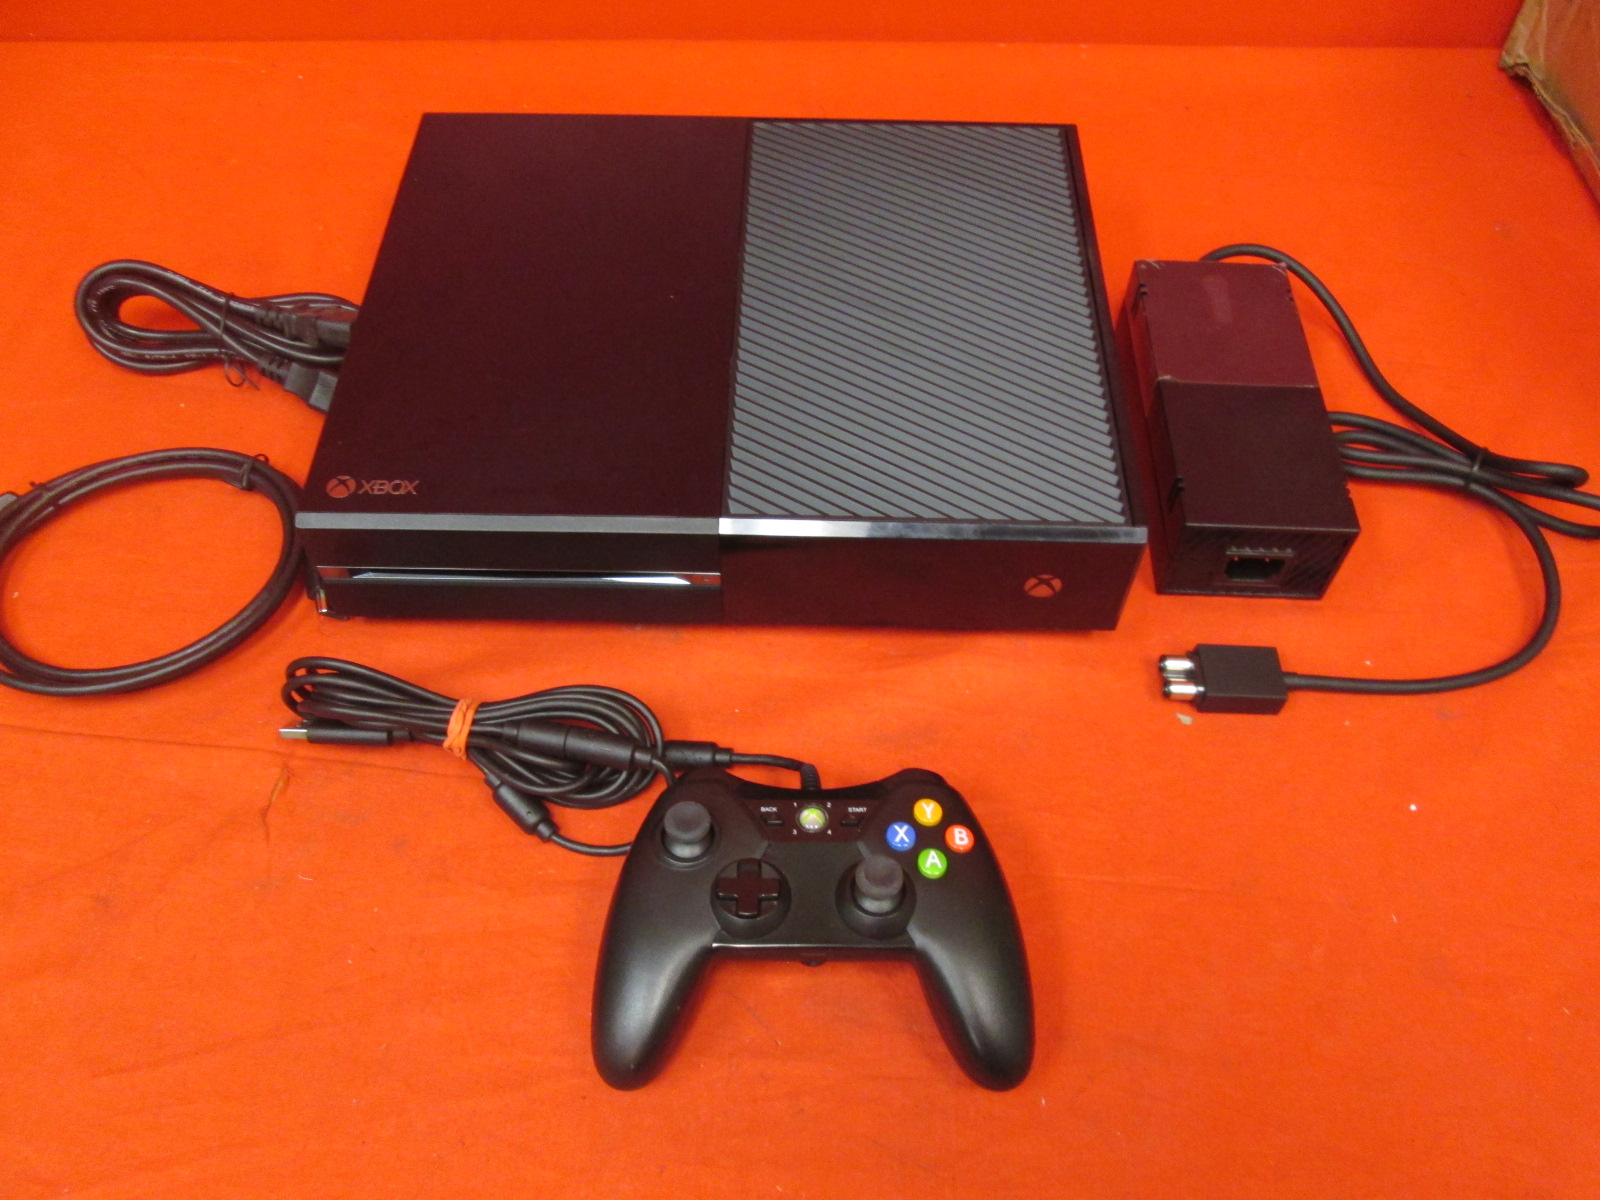 Image 0 of Xbox One 500 GB Console Black With Wired Controller